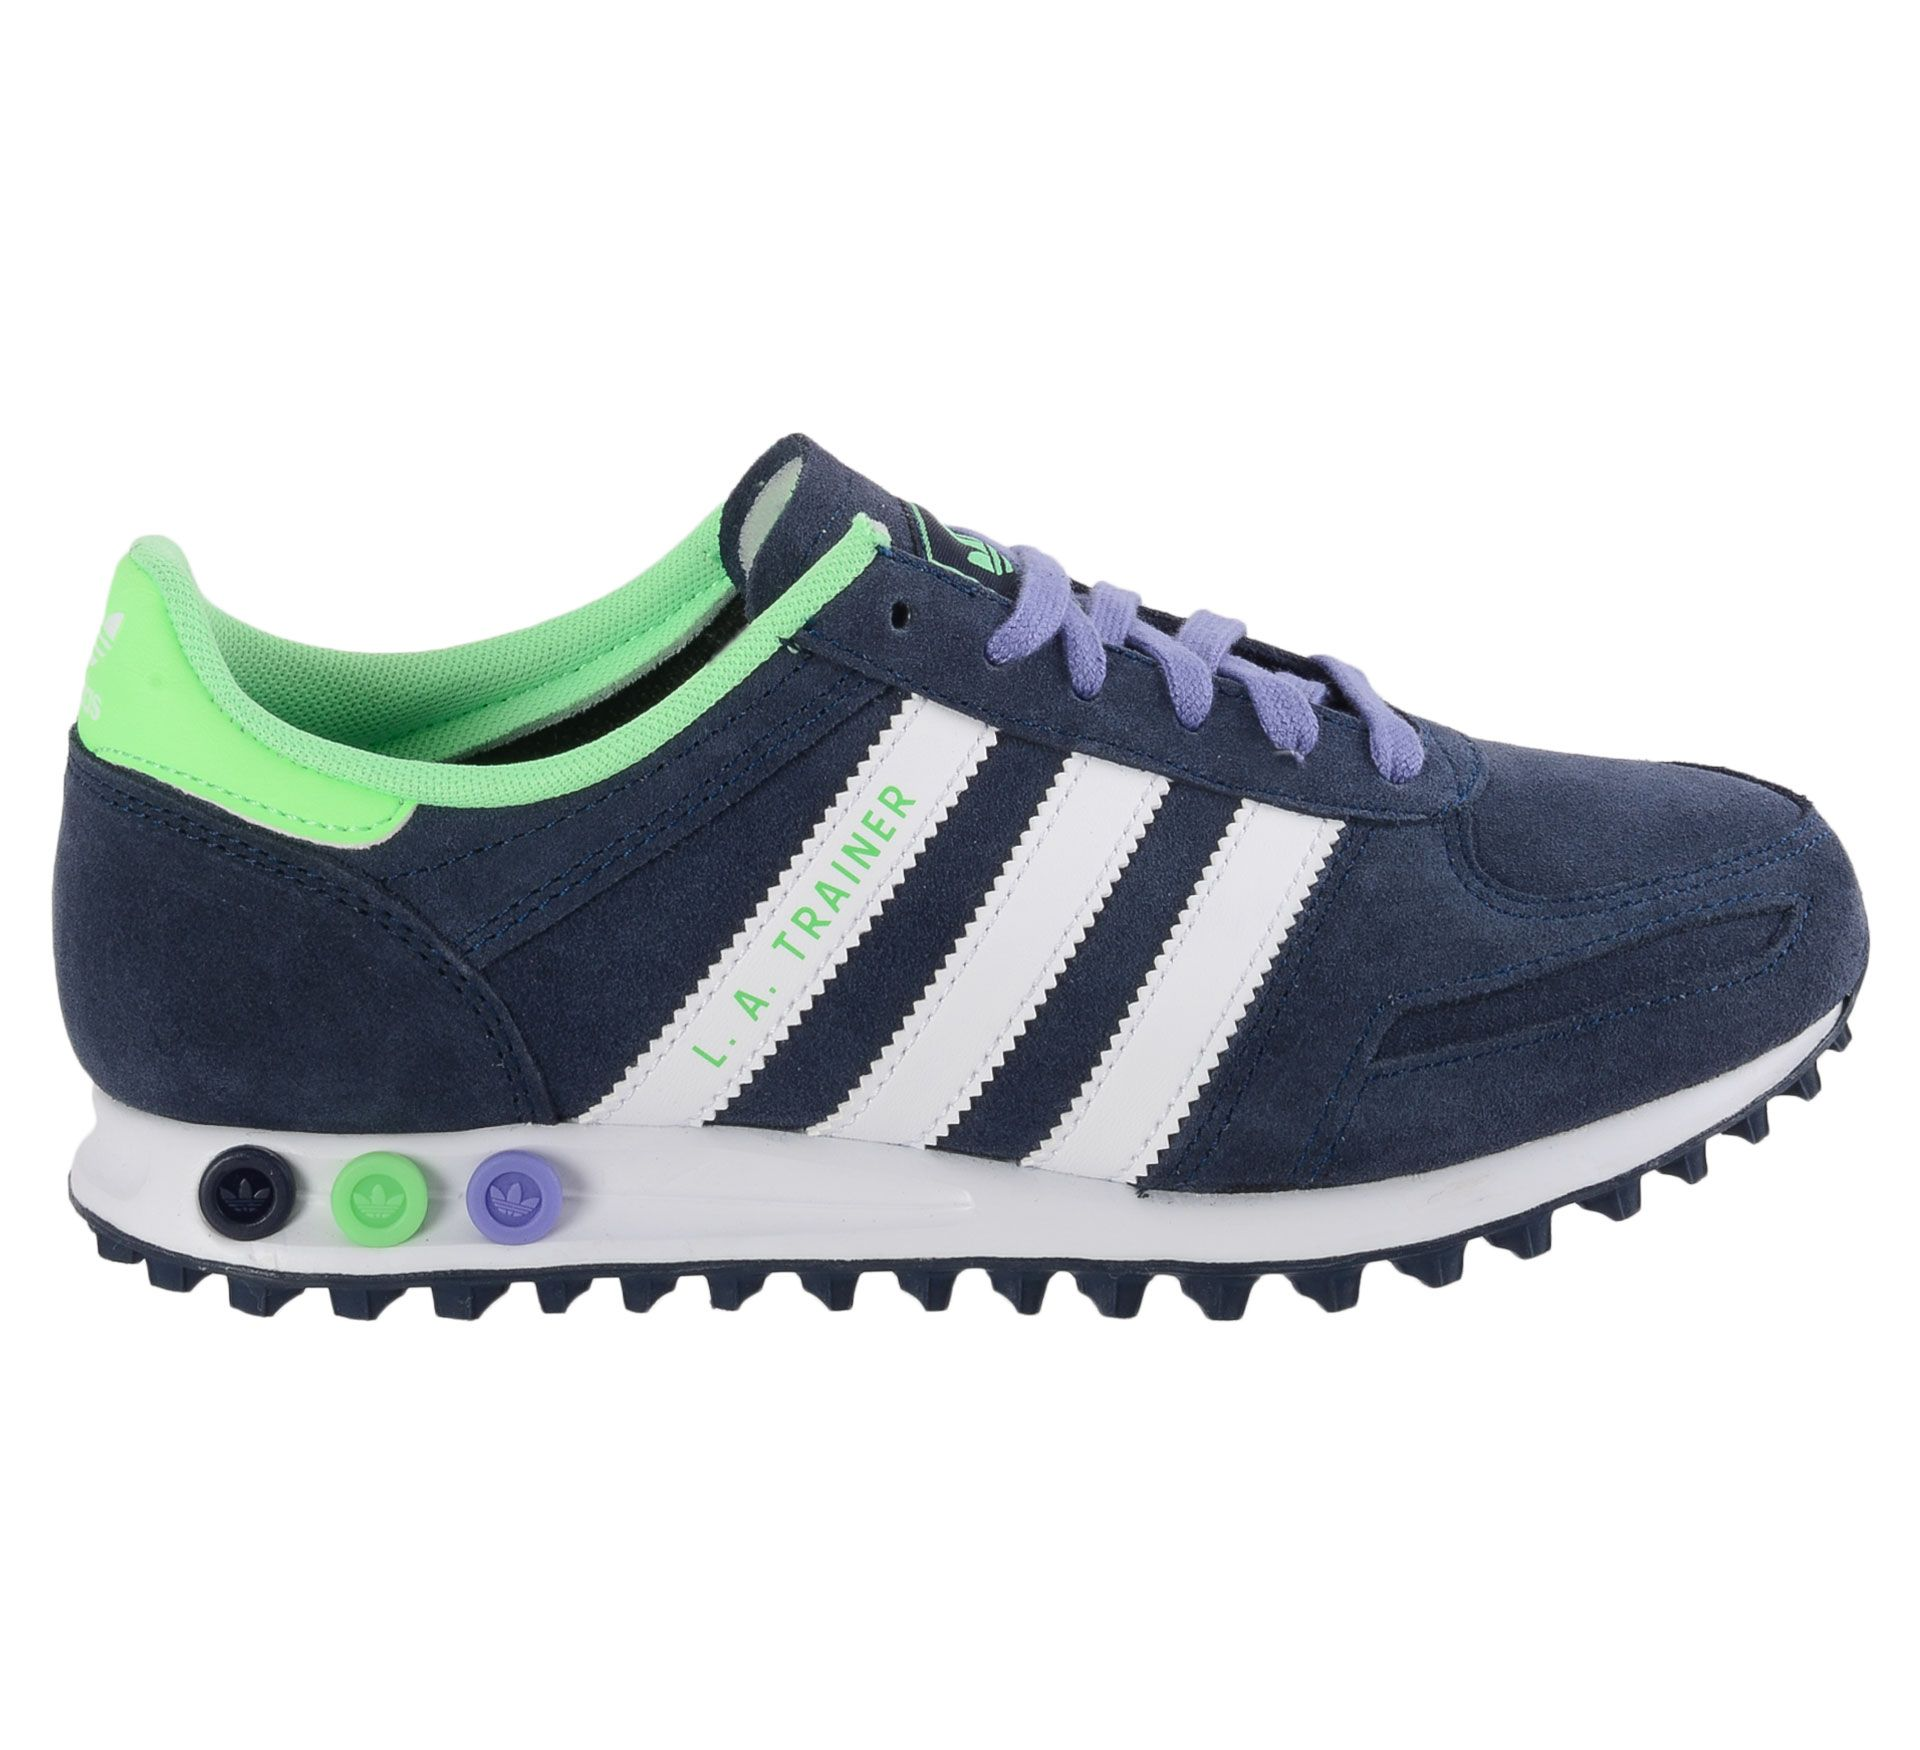 Fraaie Adidas L.A. Trainer Sneakers Dames (blauw - wit ...